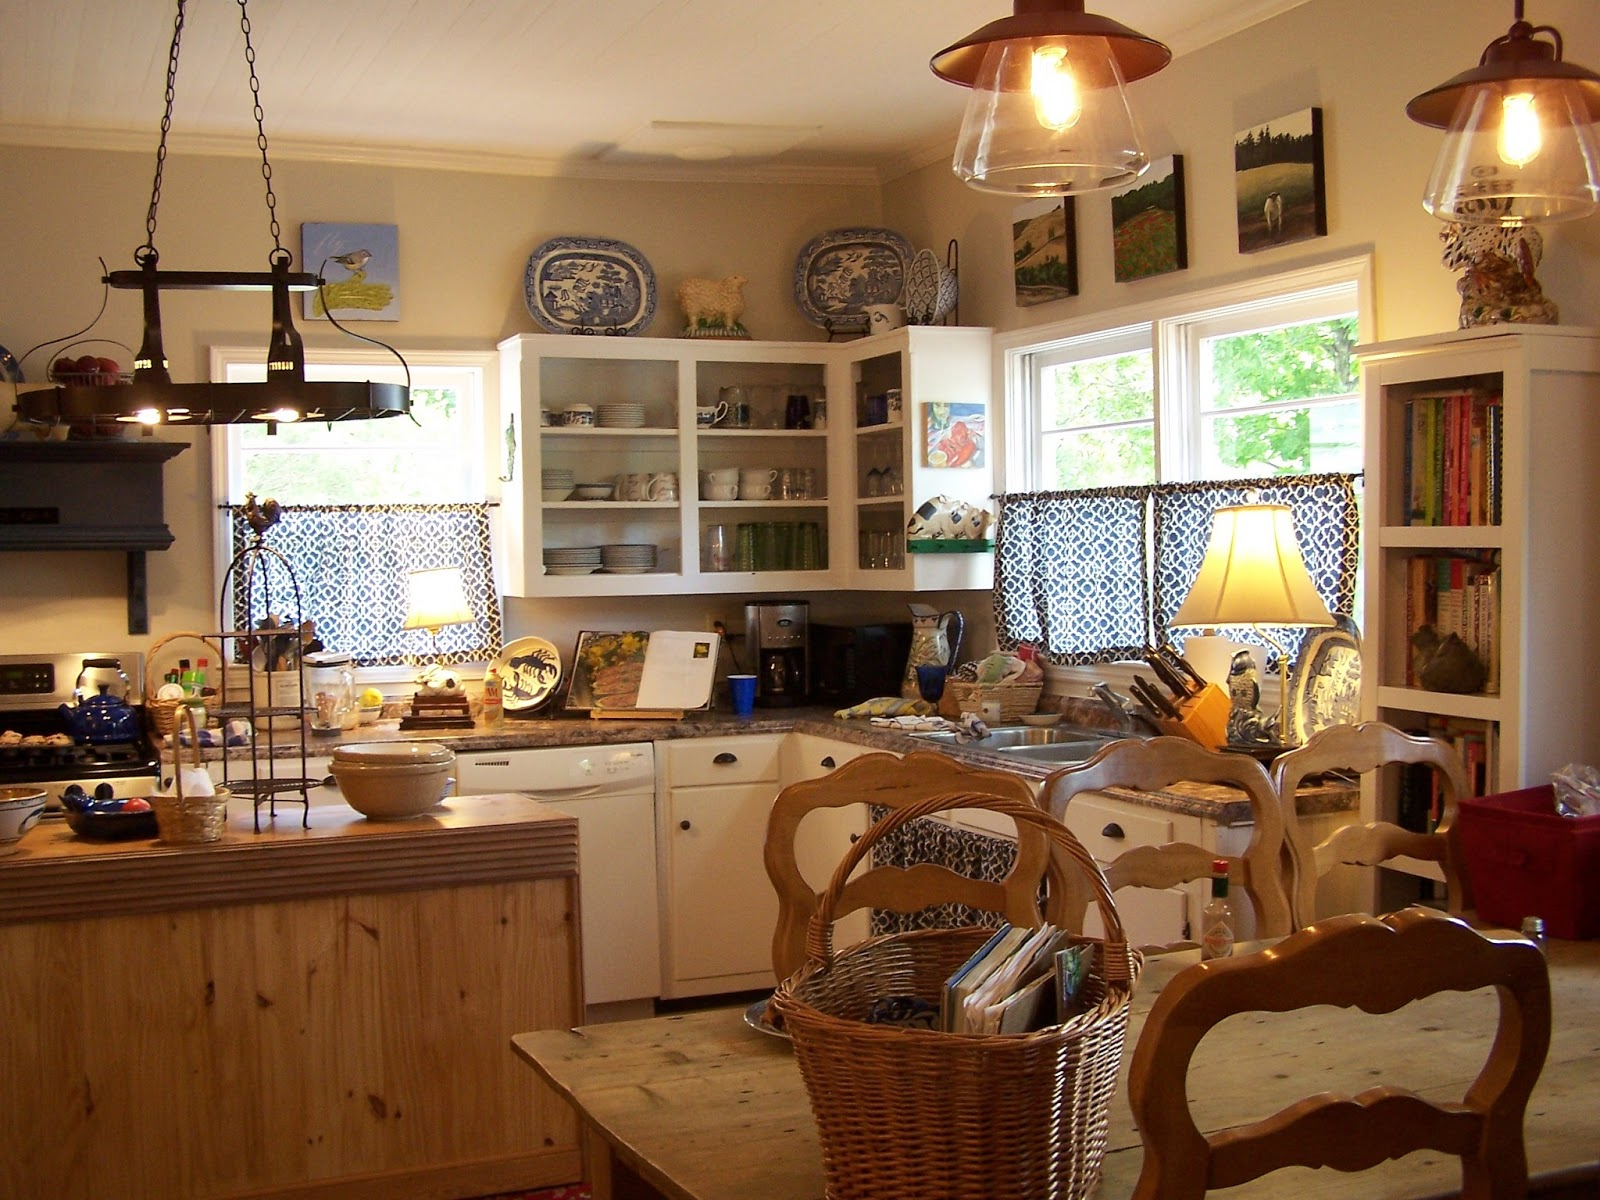 Tara dillard farmhouse kitchen for Farmhouse kitchen design pictures